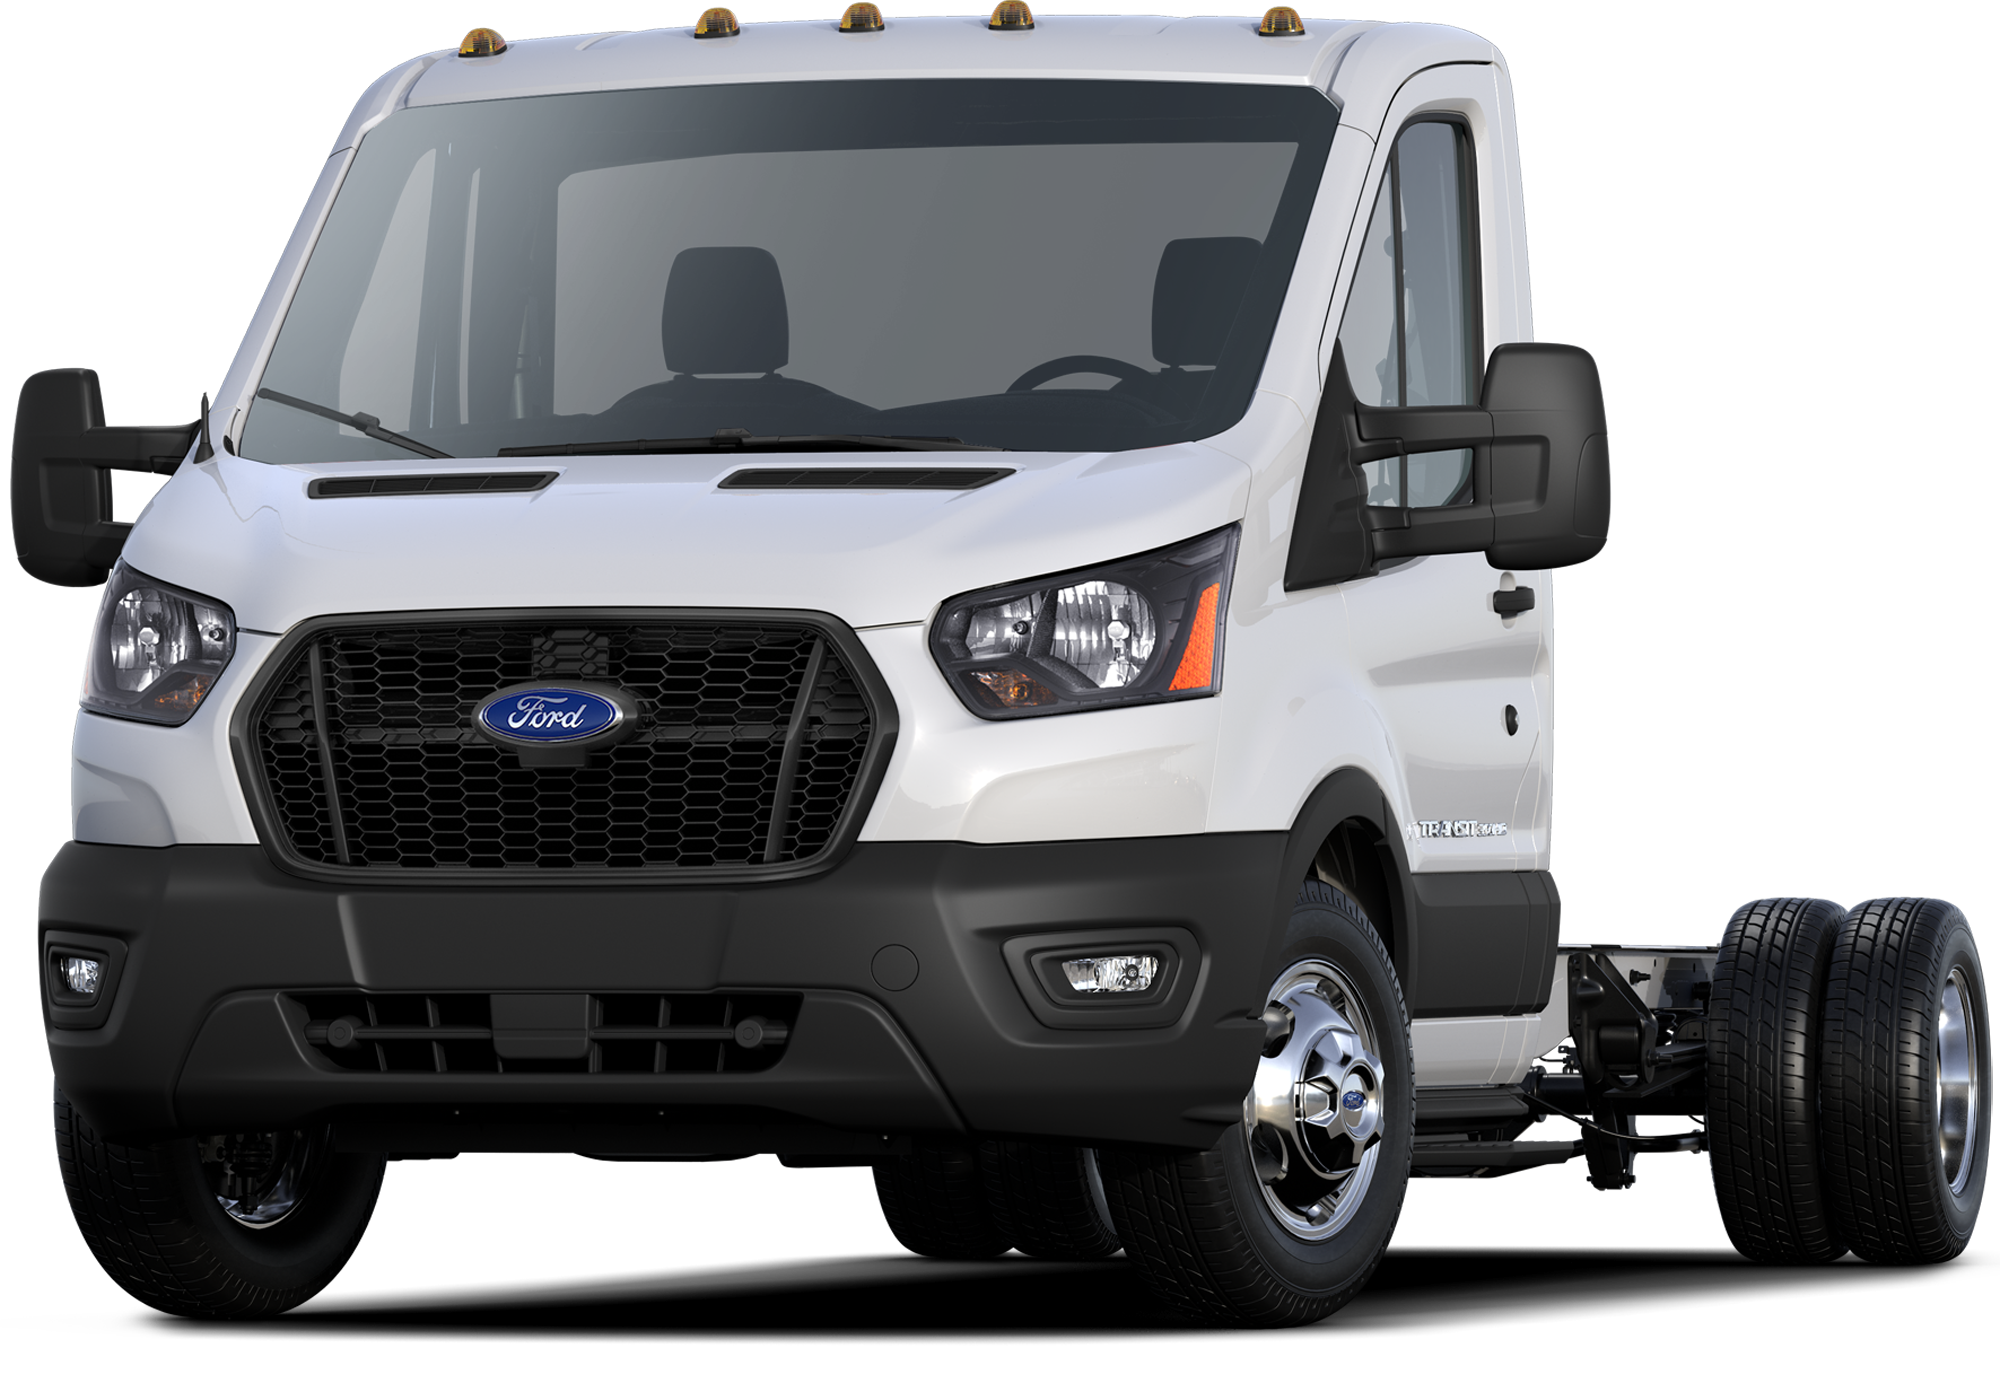 2020 Ford Transit 350 Cab Chassis Incentives Specials Offers In Olathe Ks